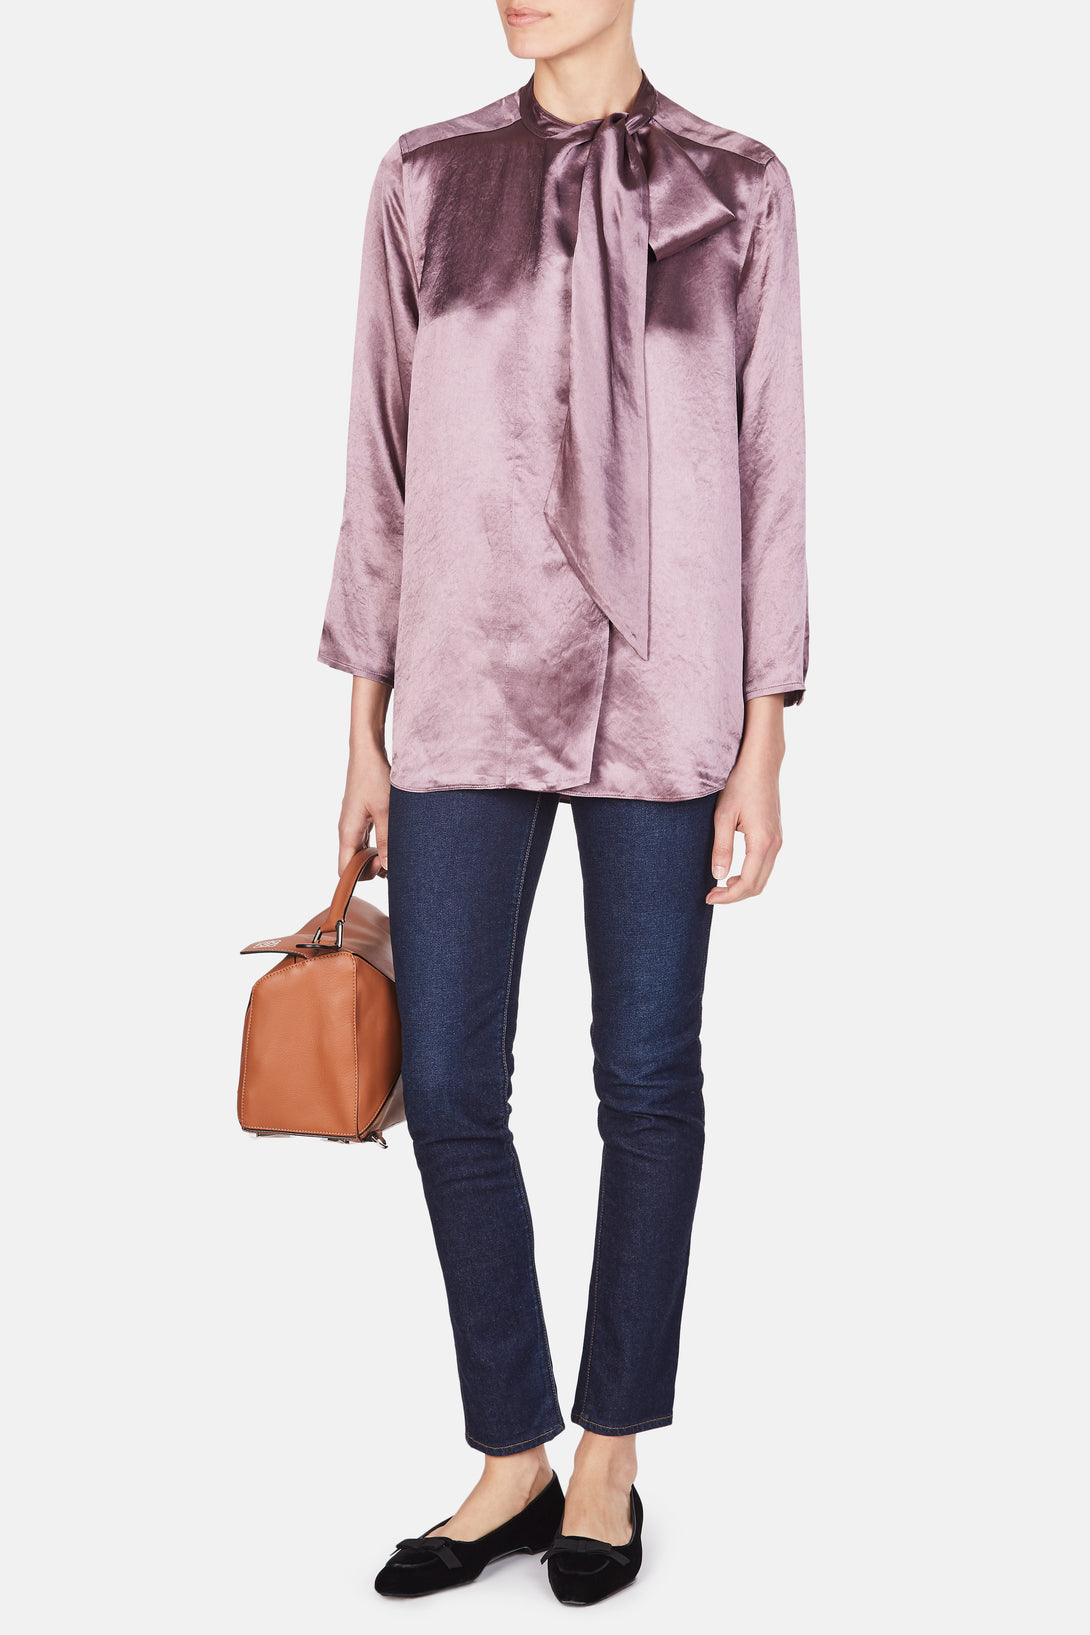 Buy Cheap Sale Manchester Great Sale For Sale Oversized Ruffle Blouse Acne Studios Extremely Sale Online Discount High Quality Official tSJWq4d269